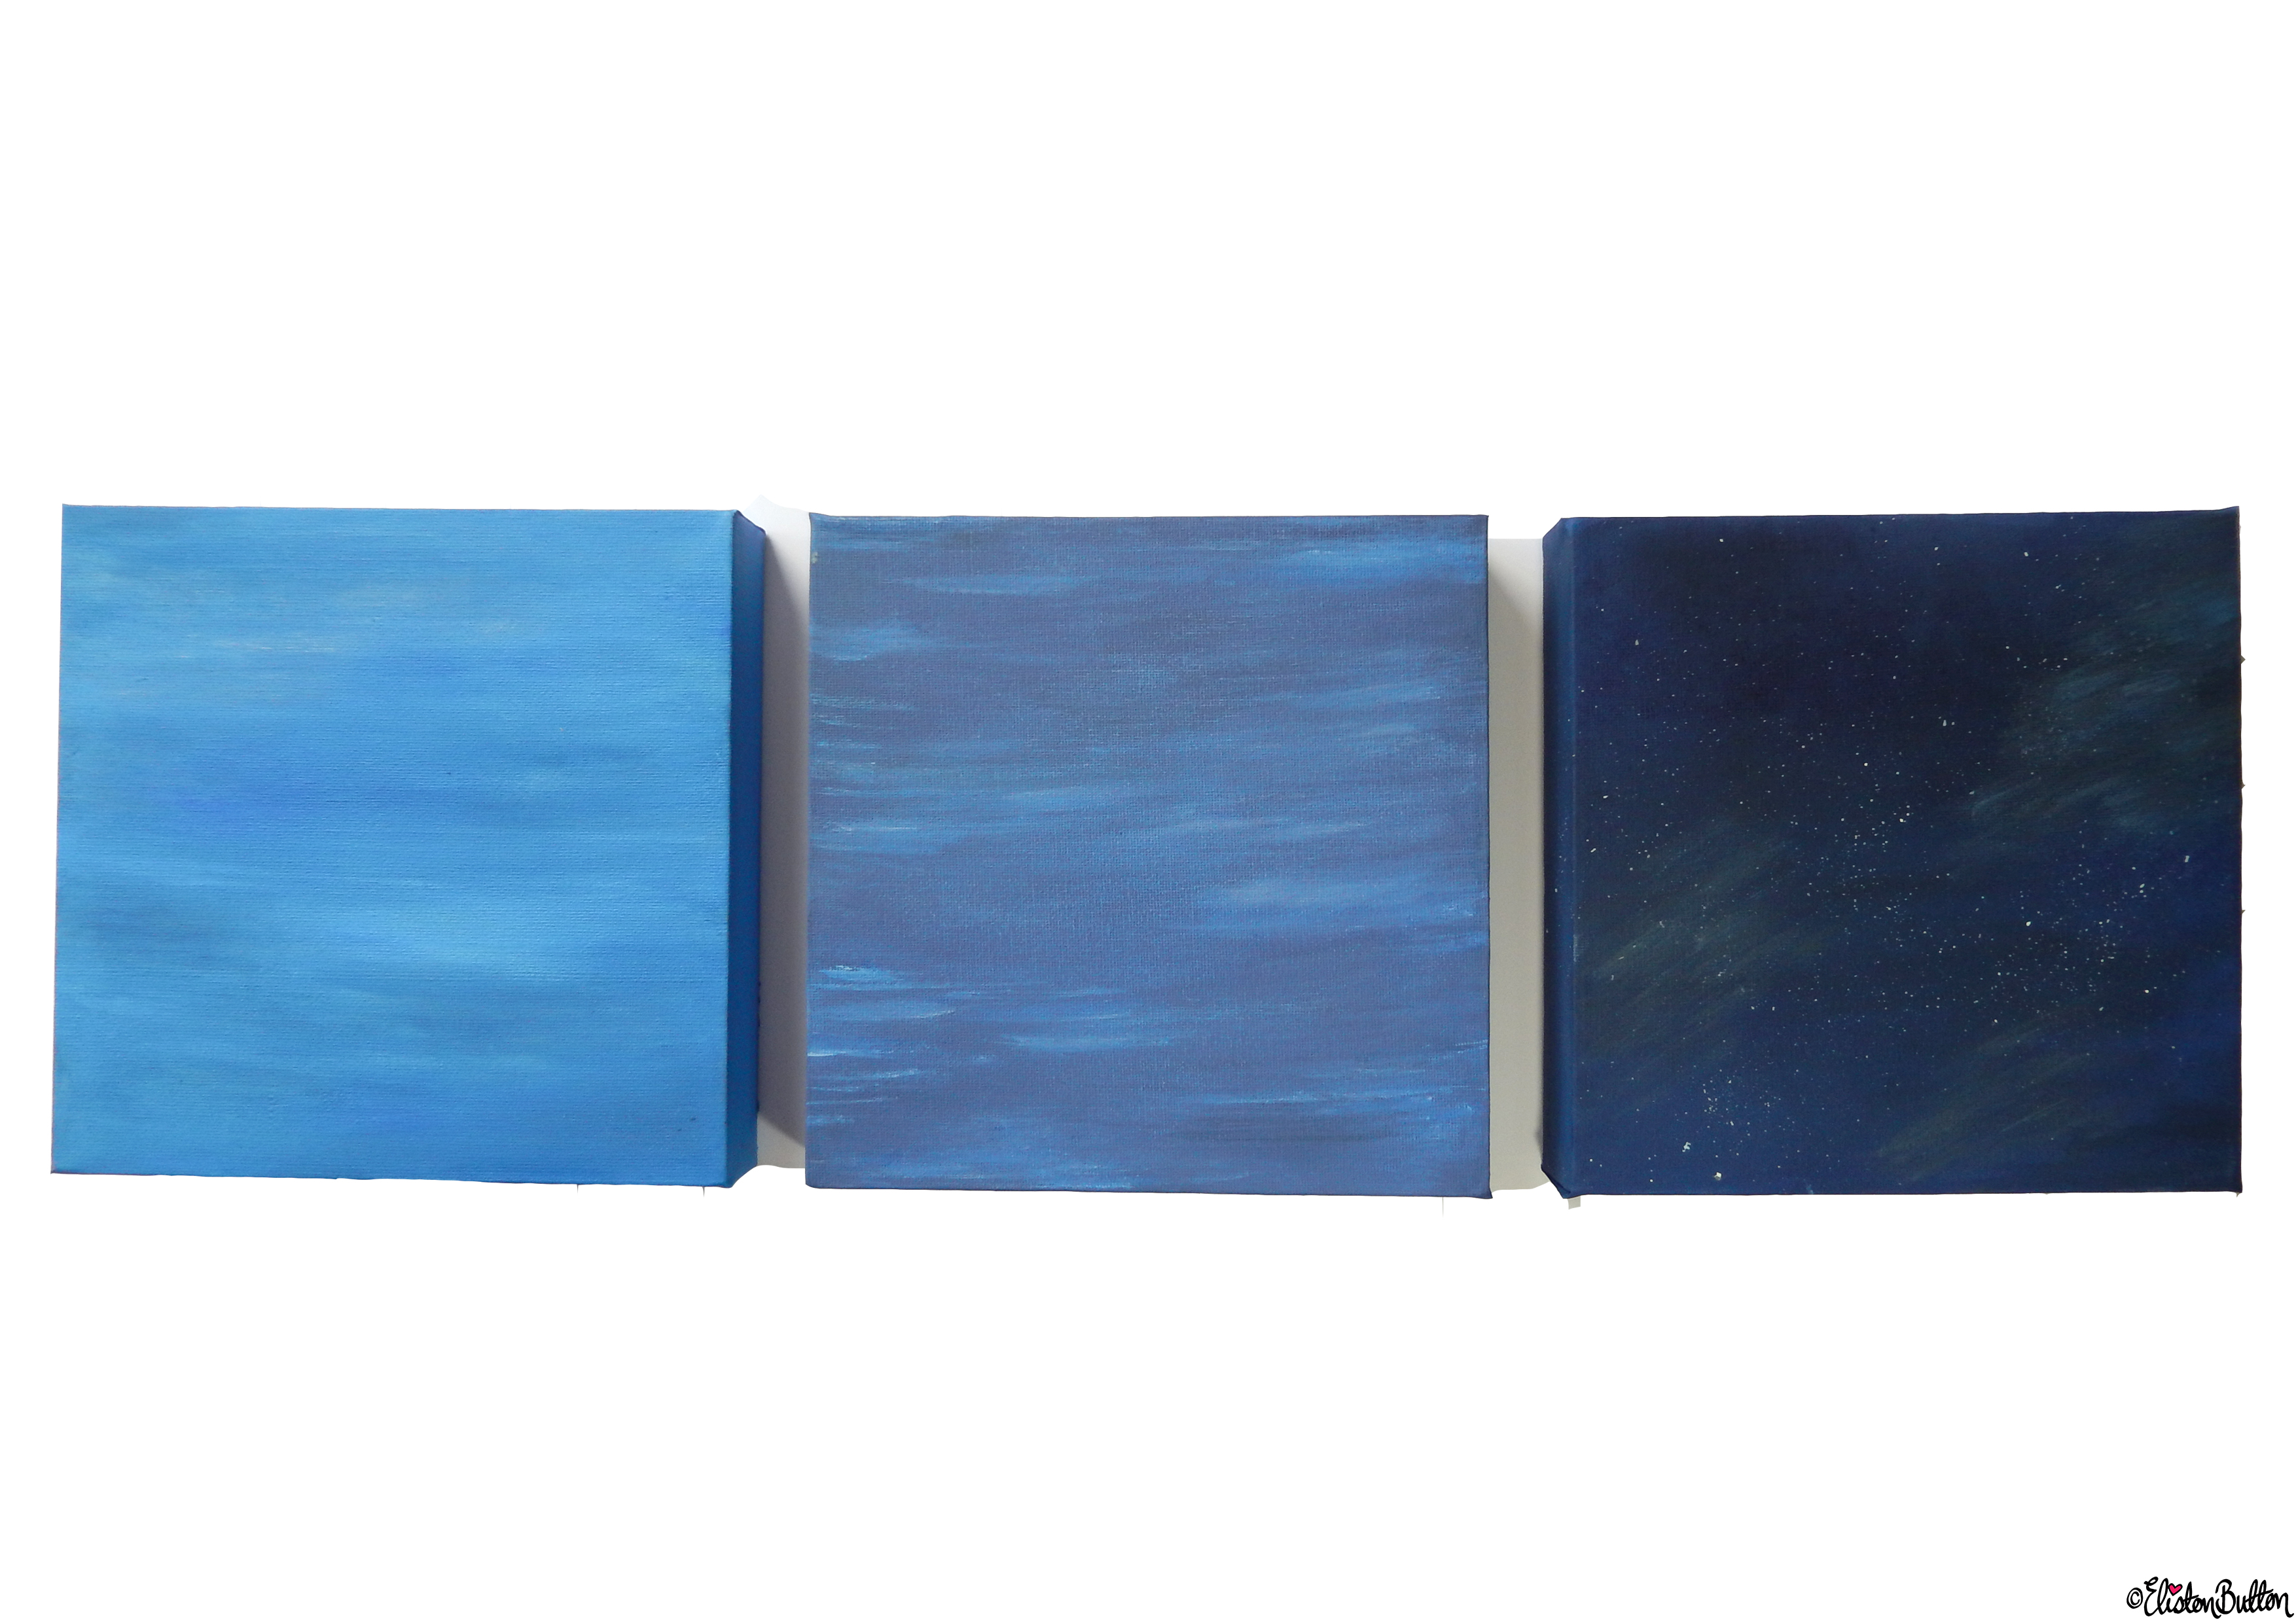 Sky and Water Painted Canvases (2) - Create 28 - No. 16, 17 & 18 - Sea and Sky Painted Canvases at www.elistonbutton.com - Eliston Button - That Crafty Kid – Art, Design, Craft & Adventure.